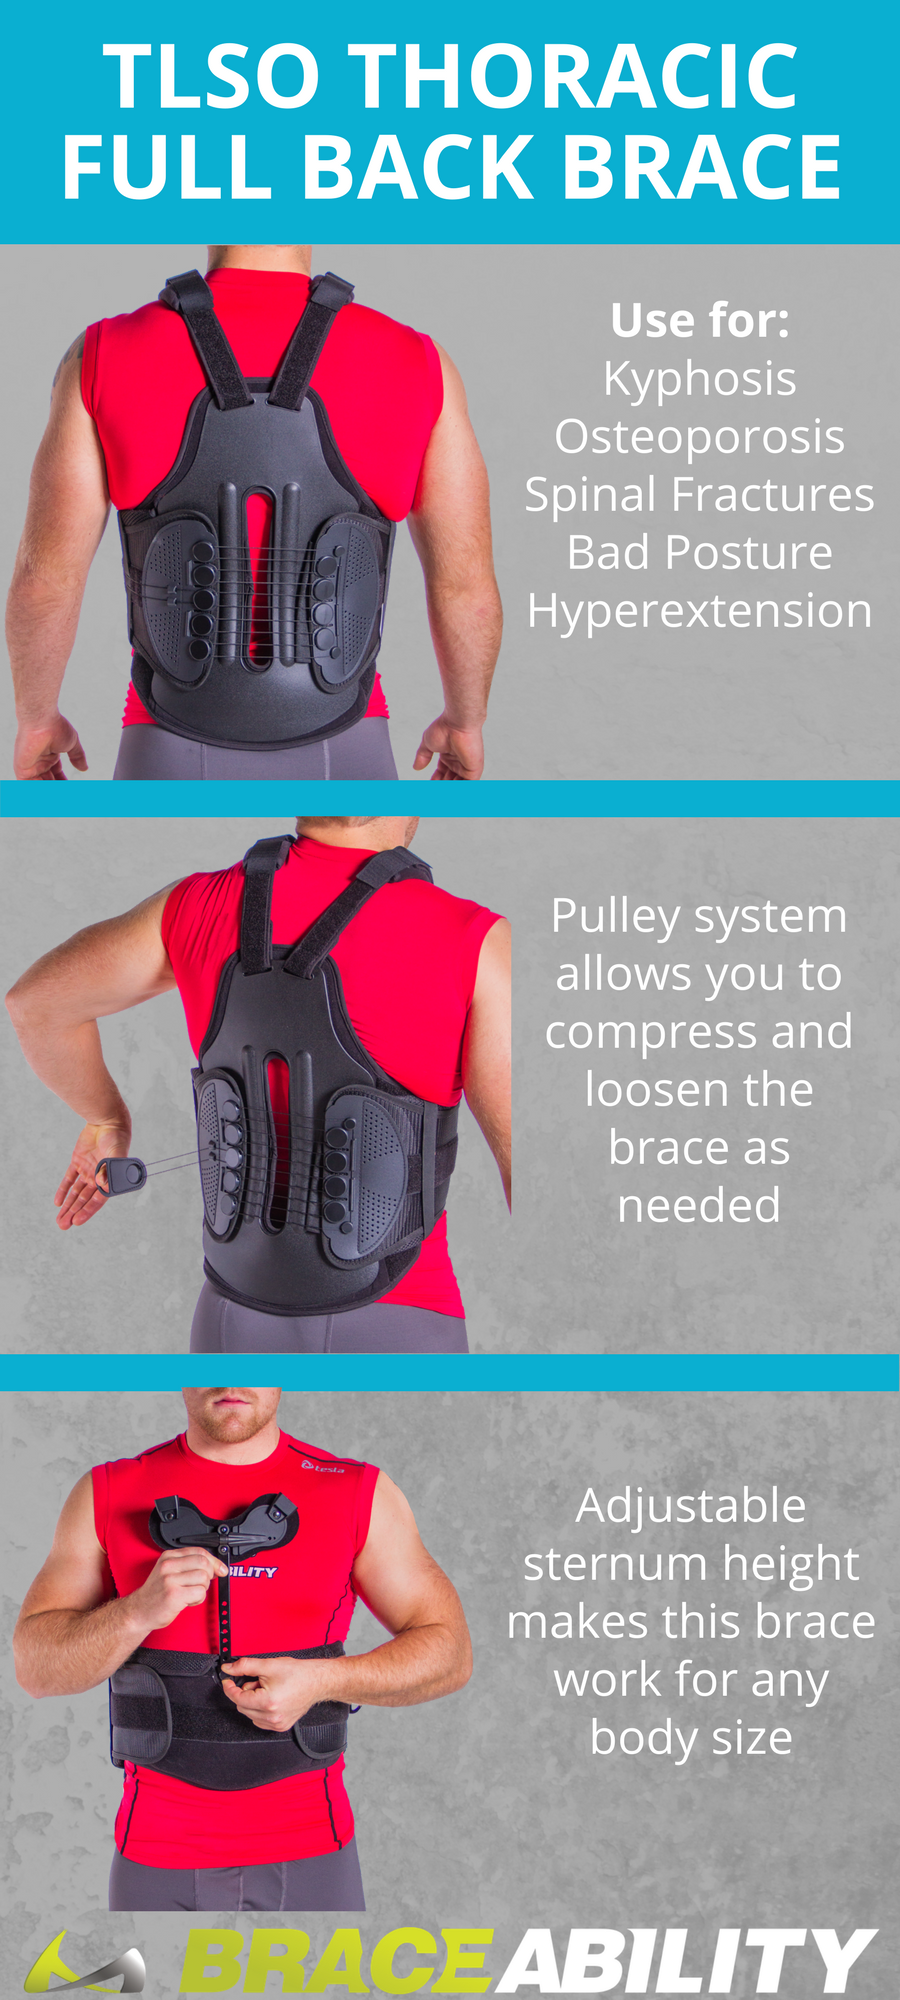 90fe677b16 Are you recovering from a back injury or surgery? This TLSO brace supports  your back